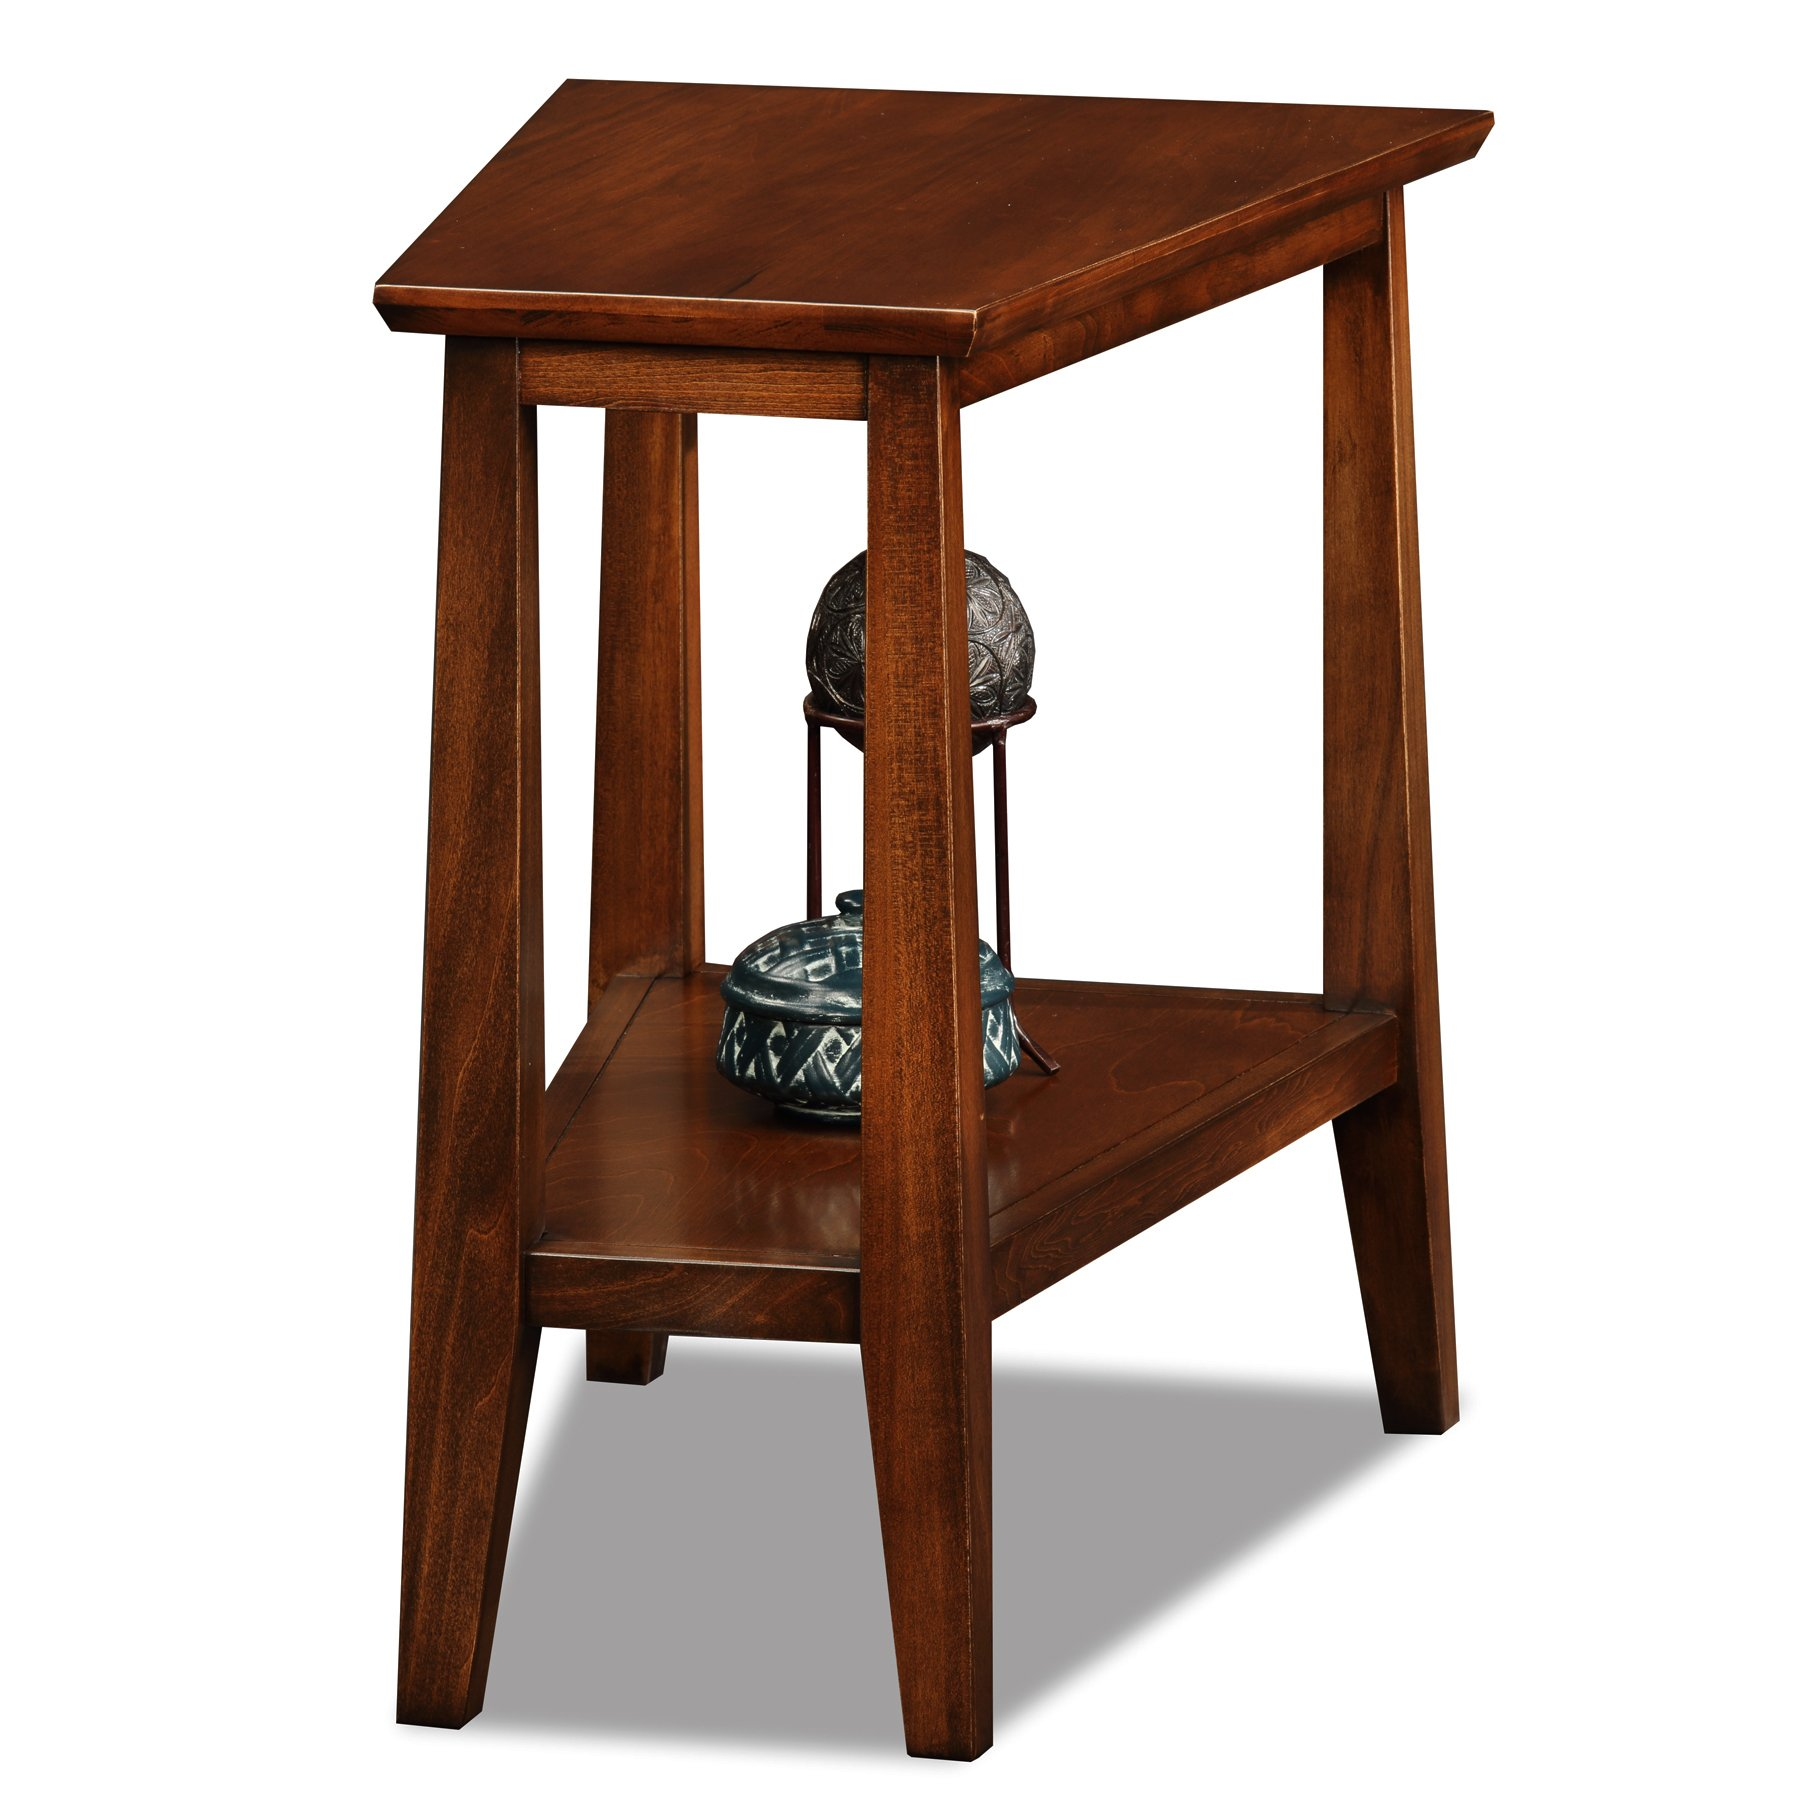 Leick Delton Recliner Wedge End Table by Leick Furniture